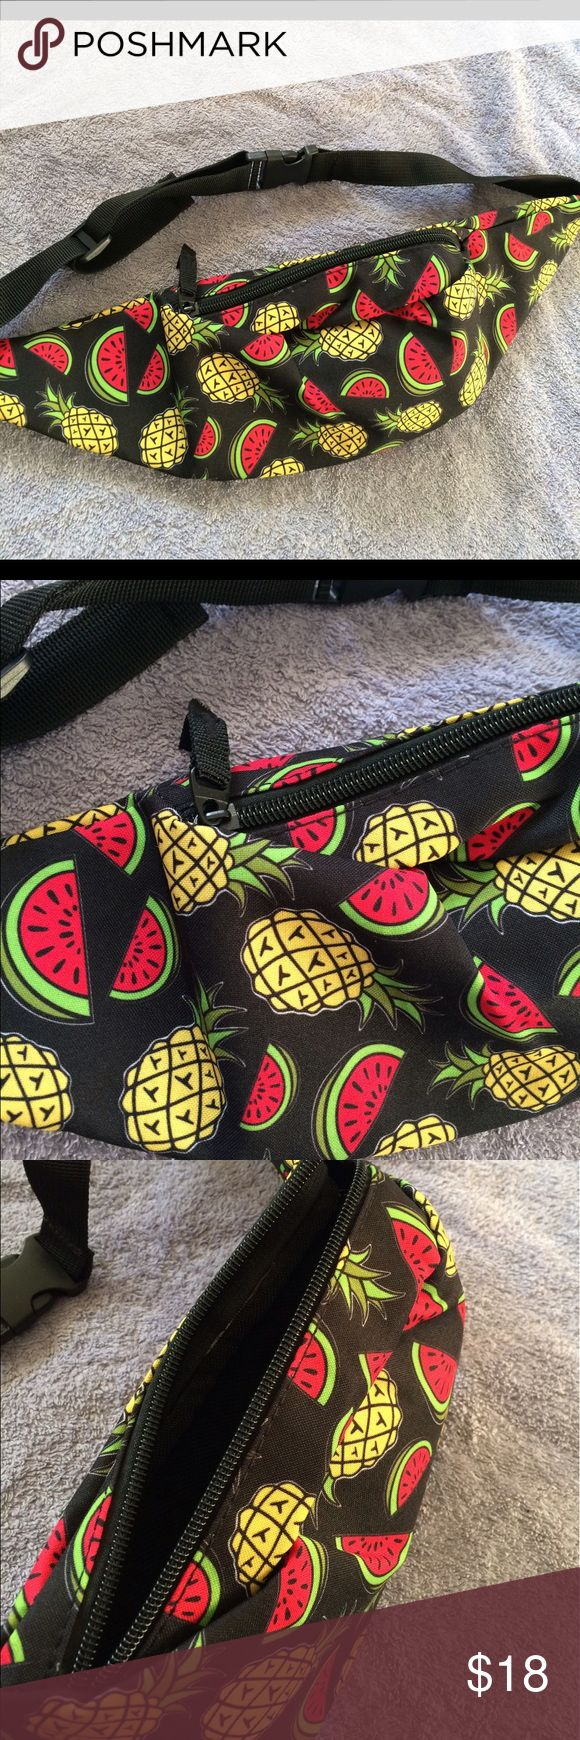 SALE Pineapple + Watermelon festival fanny pack! Brand new and never worn black fanny pack with pineapples and watermelons! Super cute & amazing quality! Holds a lot for its compact size; perfect for any music festival, rave etc. ;-) VS Pink for exposure ✅check out all my items (inlcuding this one!) on vinted & mercari FOR LESS (+cheaper shipping!)  PINK Victoria's Secret Accessories